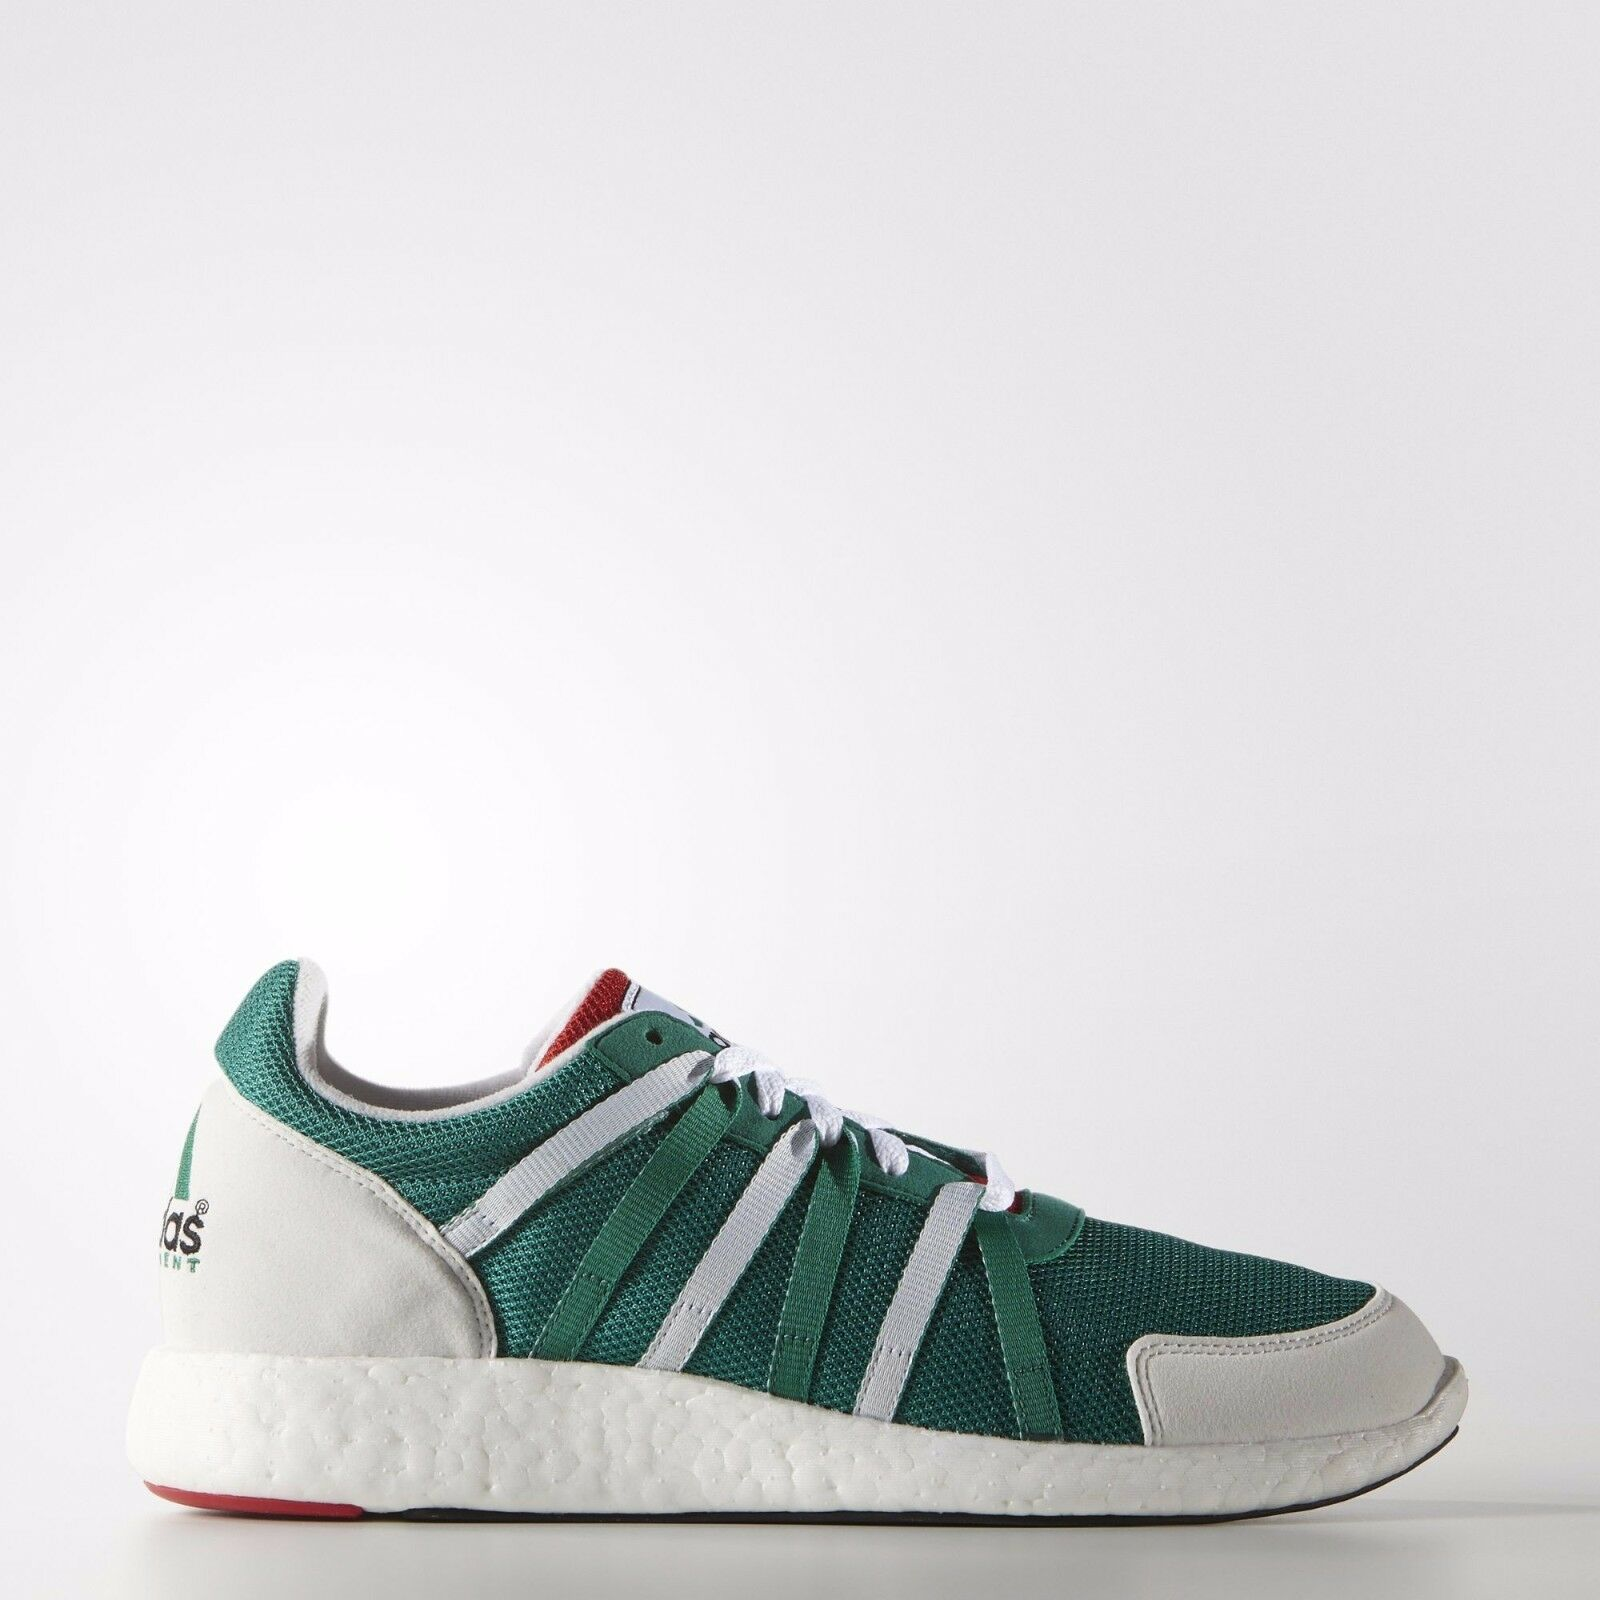 Adidas Equipment EQT Racing 93/16 Boost S79122 Limited Edition Only 993 Pairs